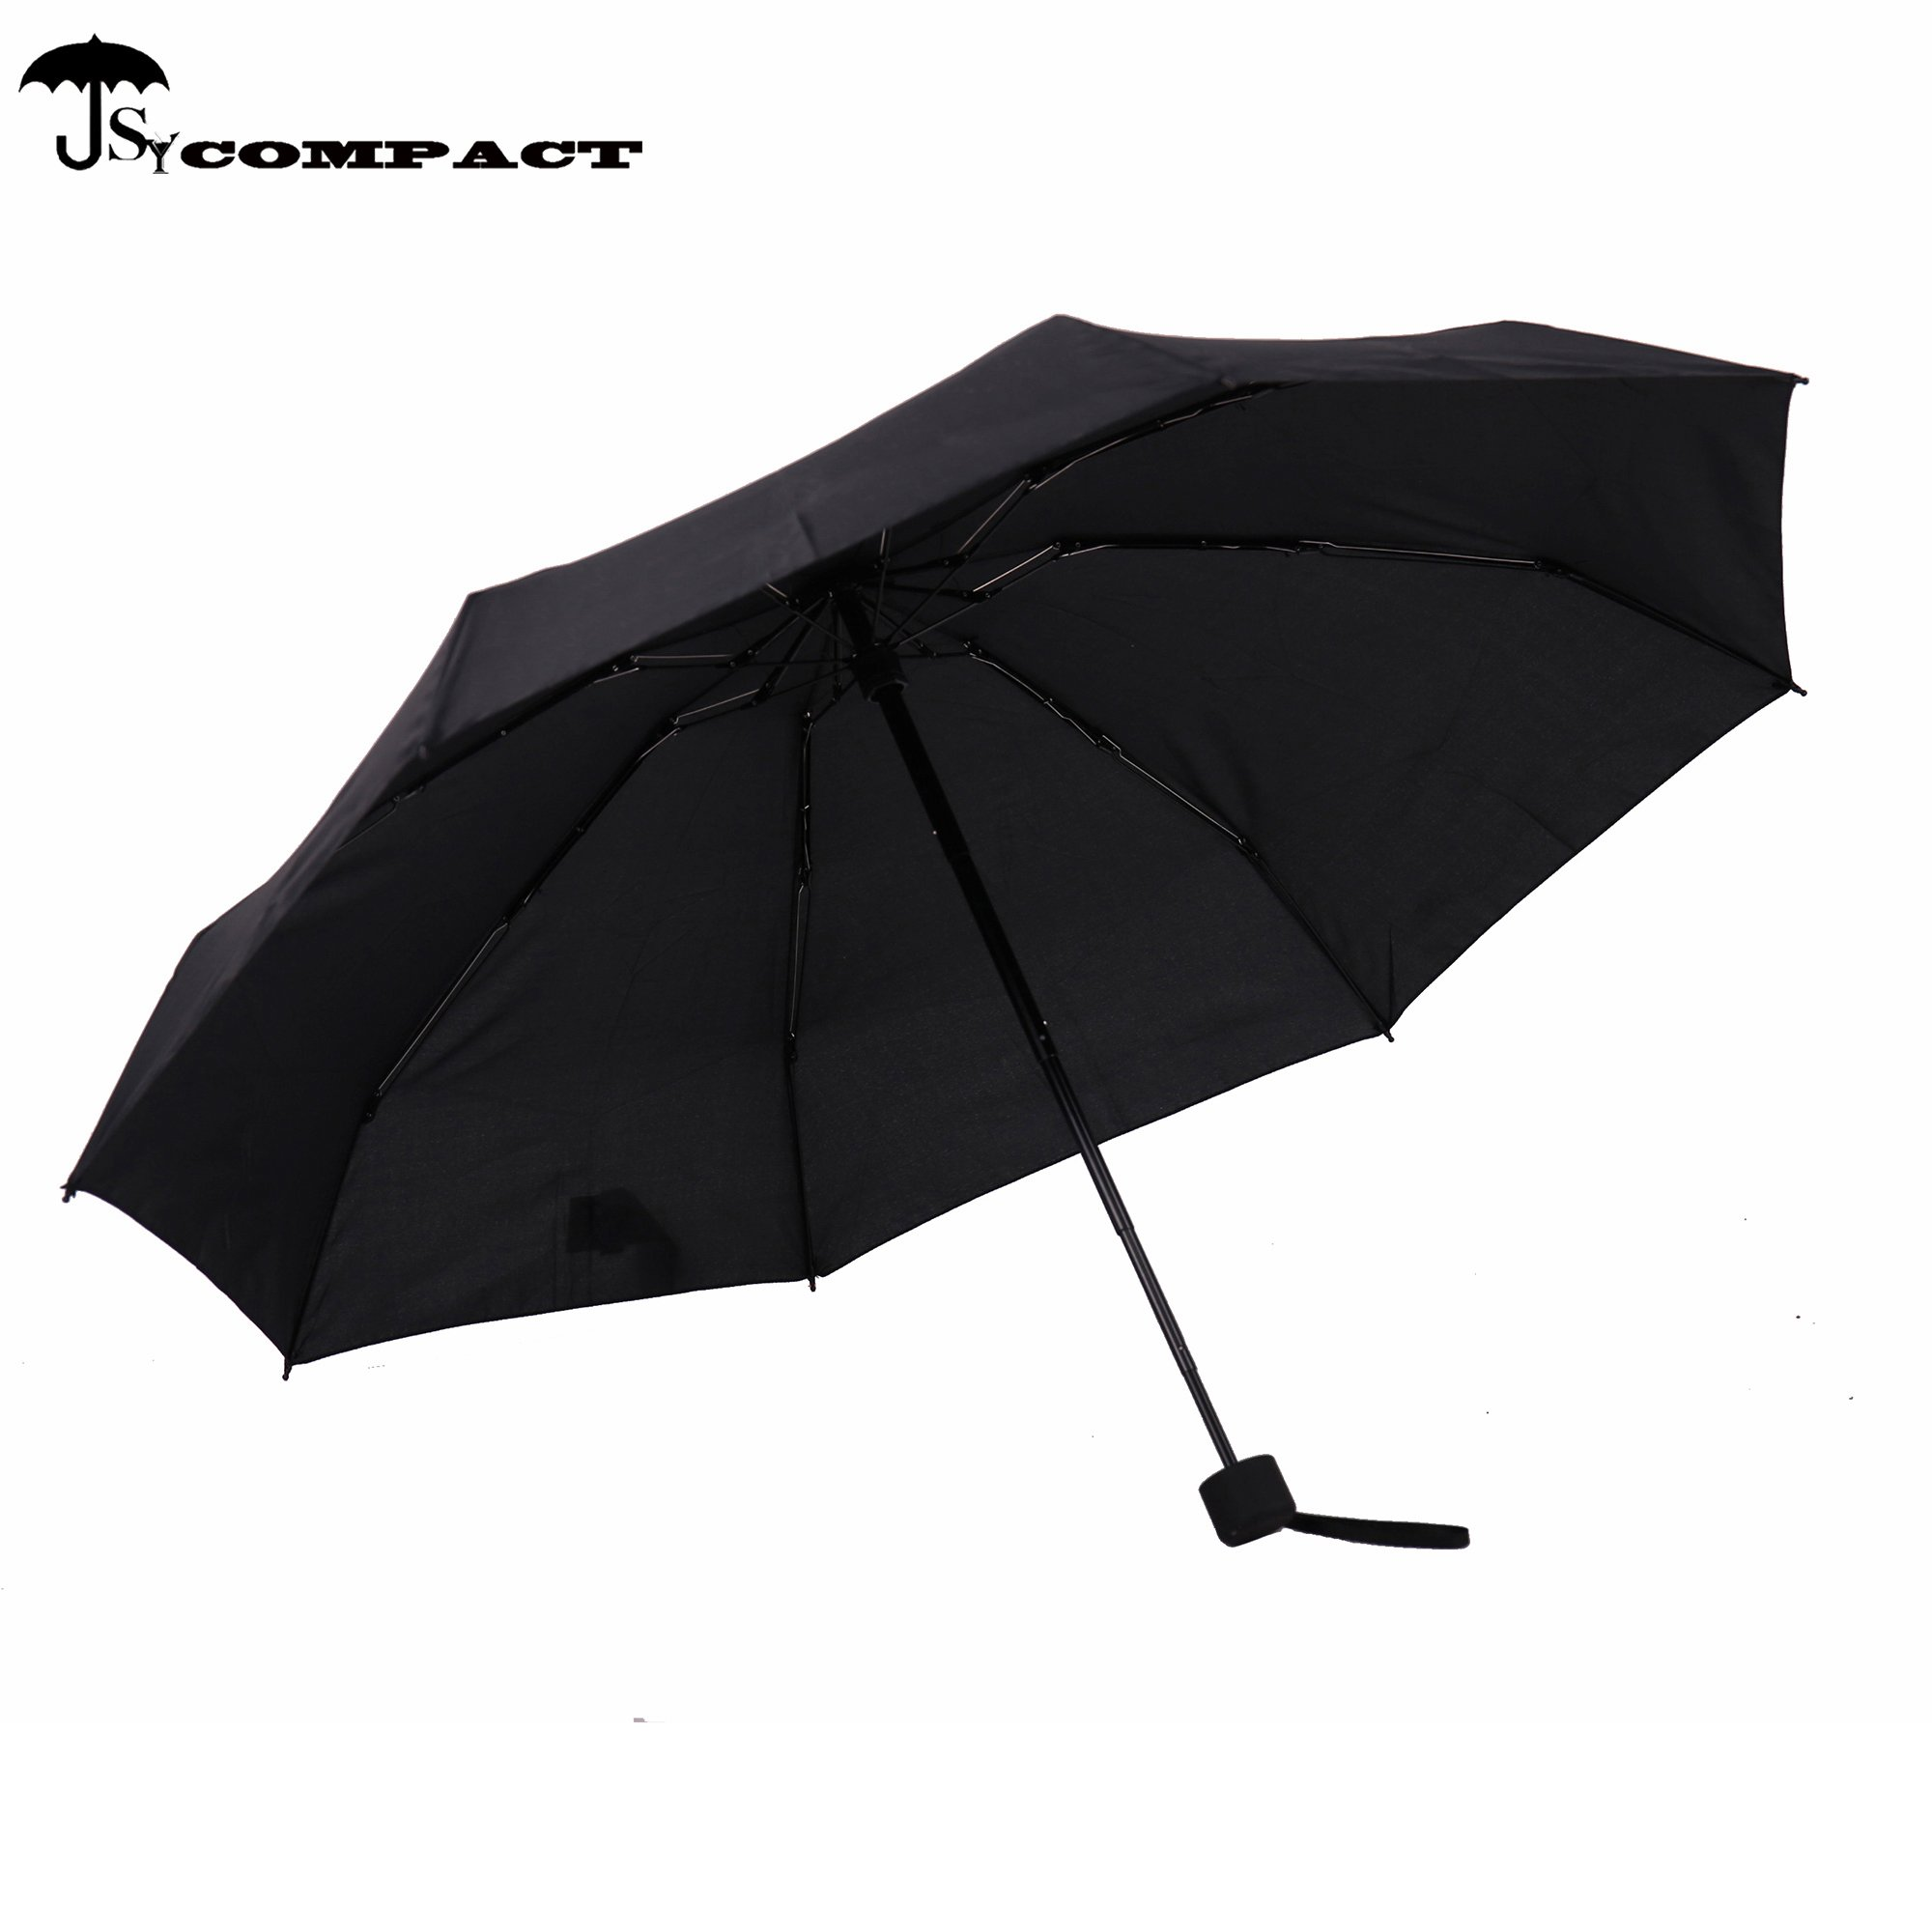 SY COMPACT Travel Umbrella - Lightweight Portable Mini Compact Umbrellas-Factory Outlet Shop (Black) by SY COMPACT (Image #4)